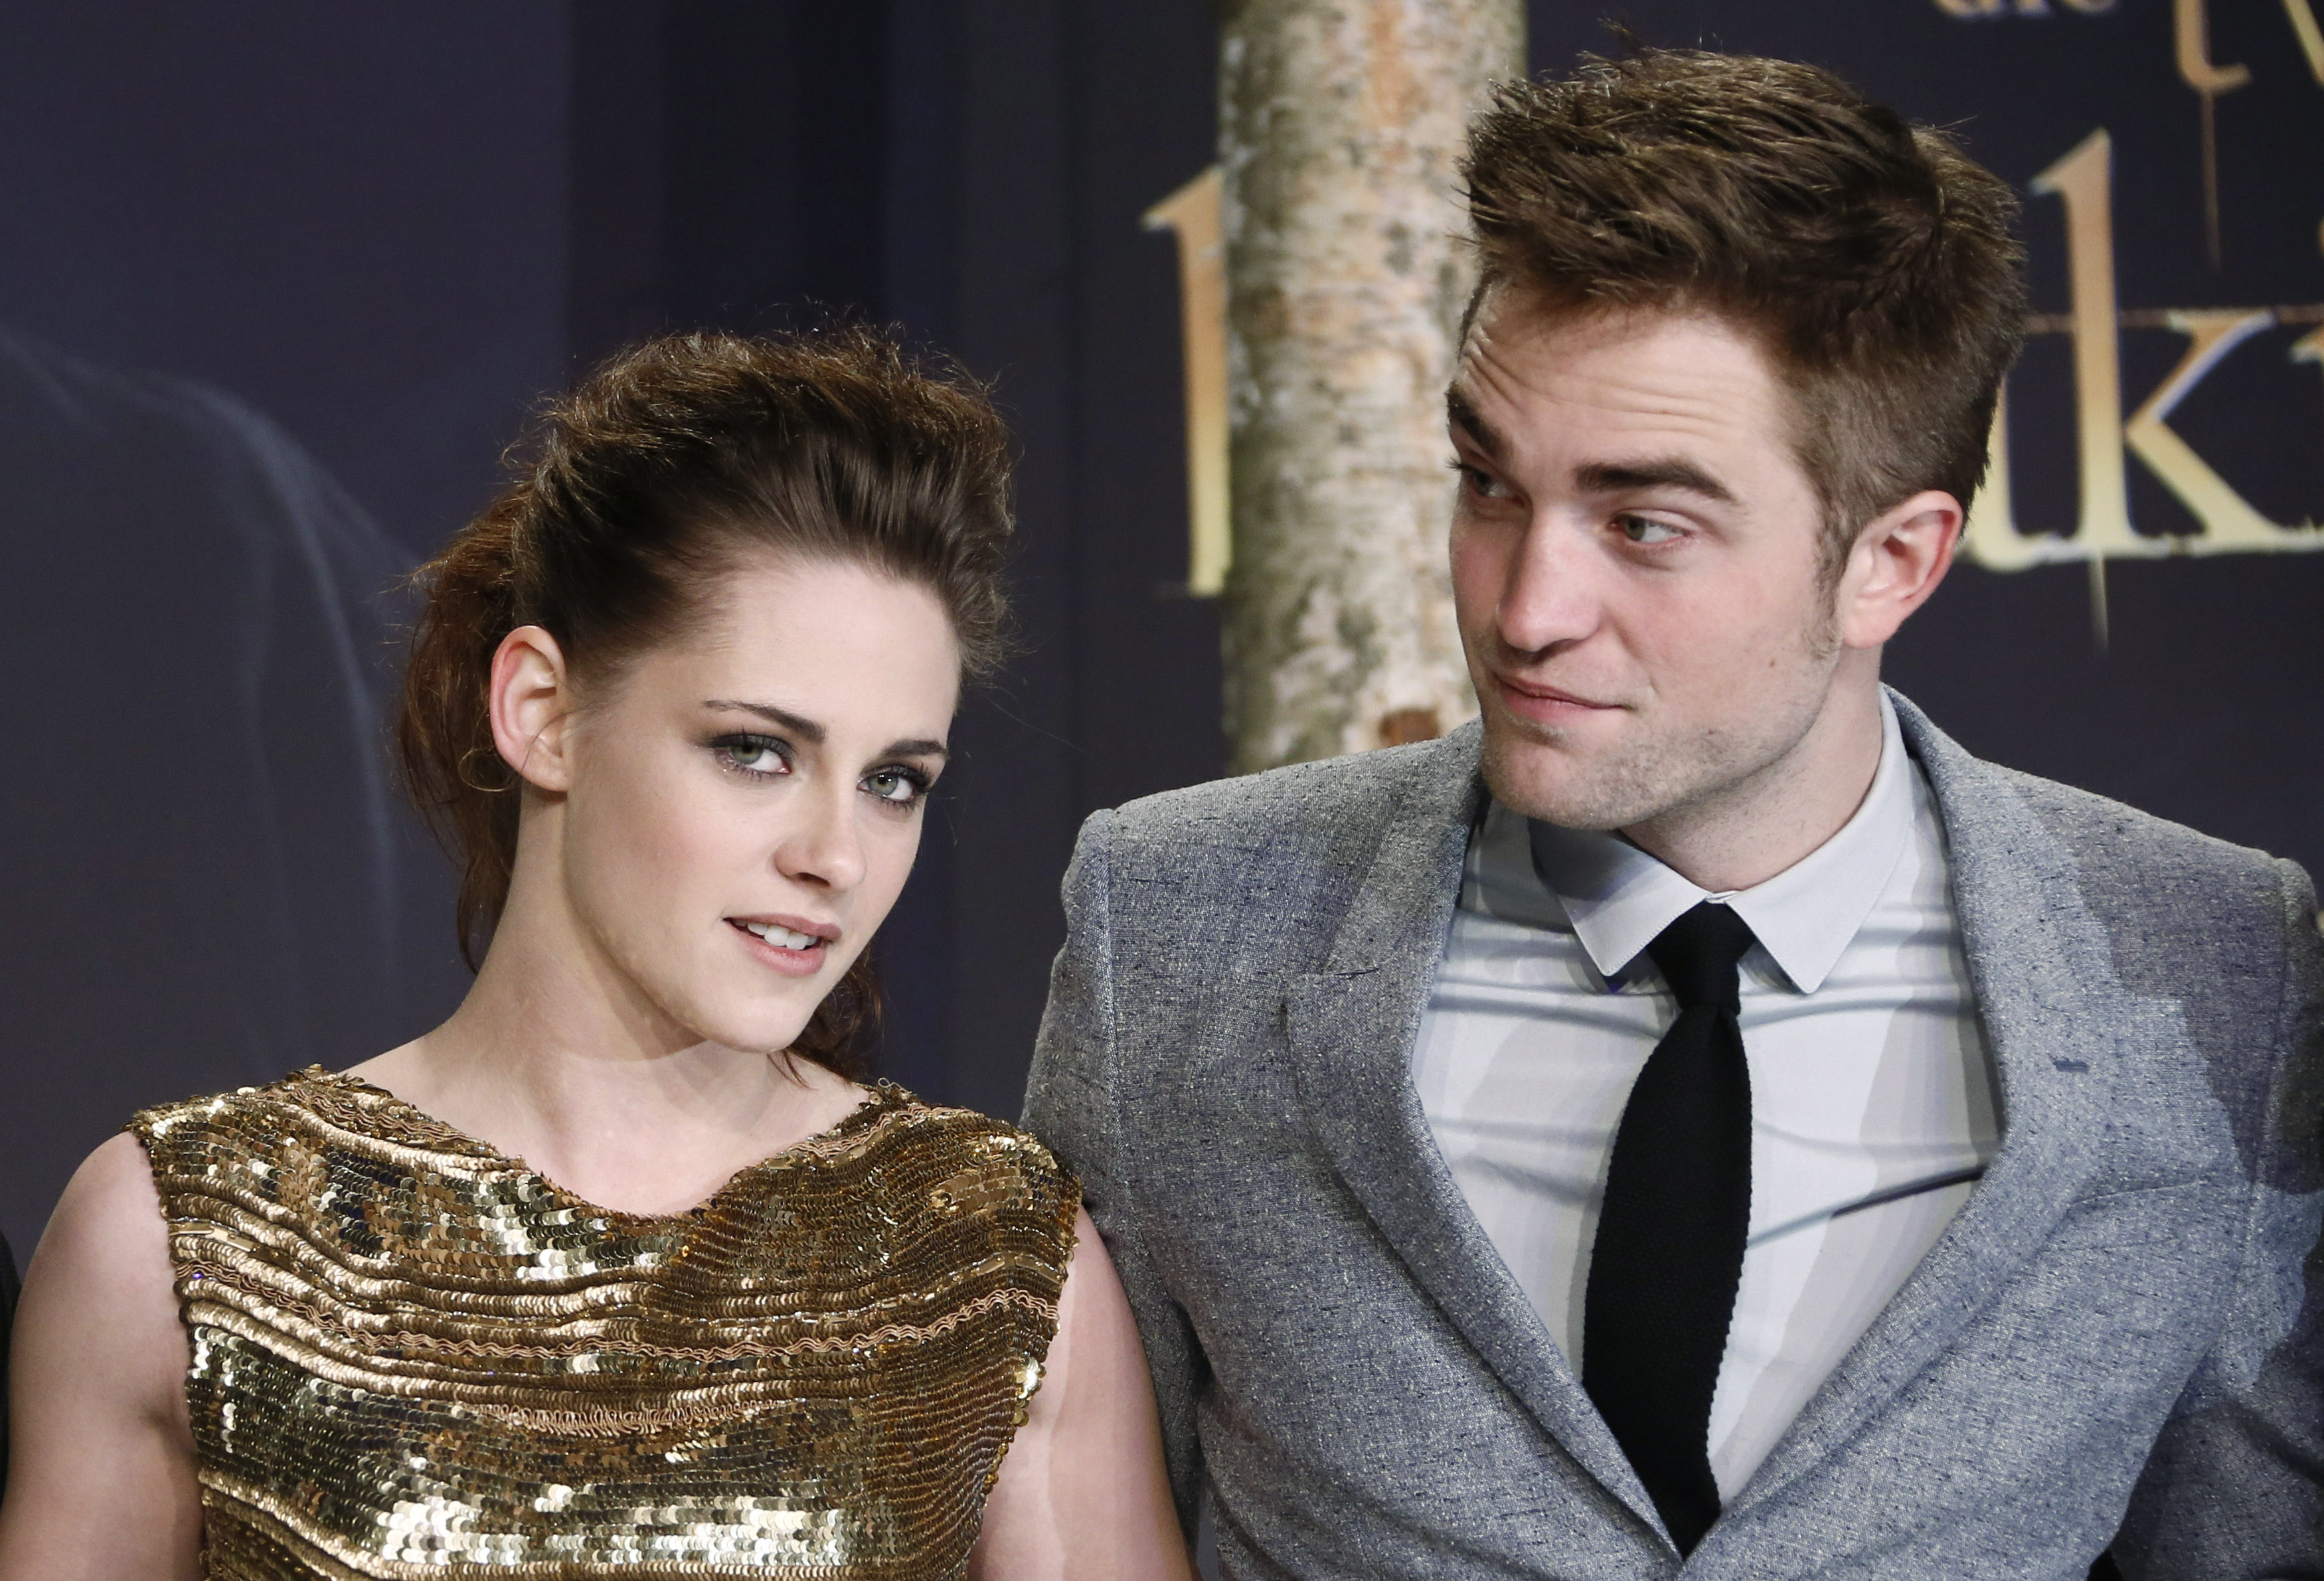 Kristen Stewart opens up about Robert Pattinson relationship: 'It wasn't real life anymore'